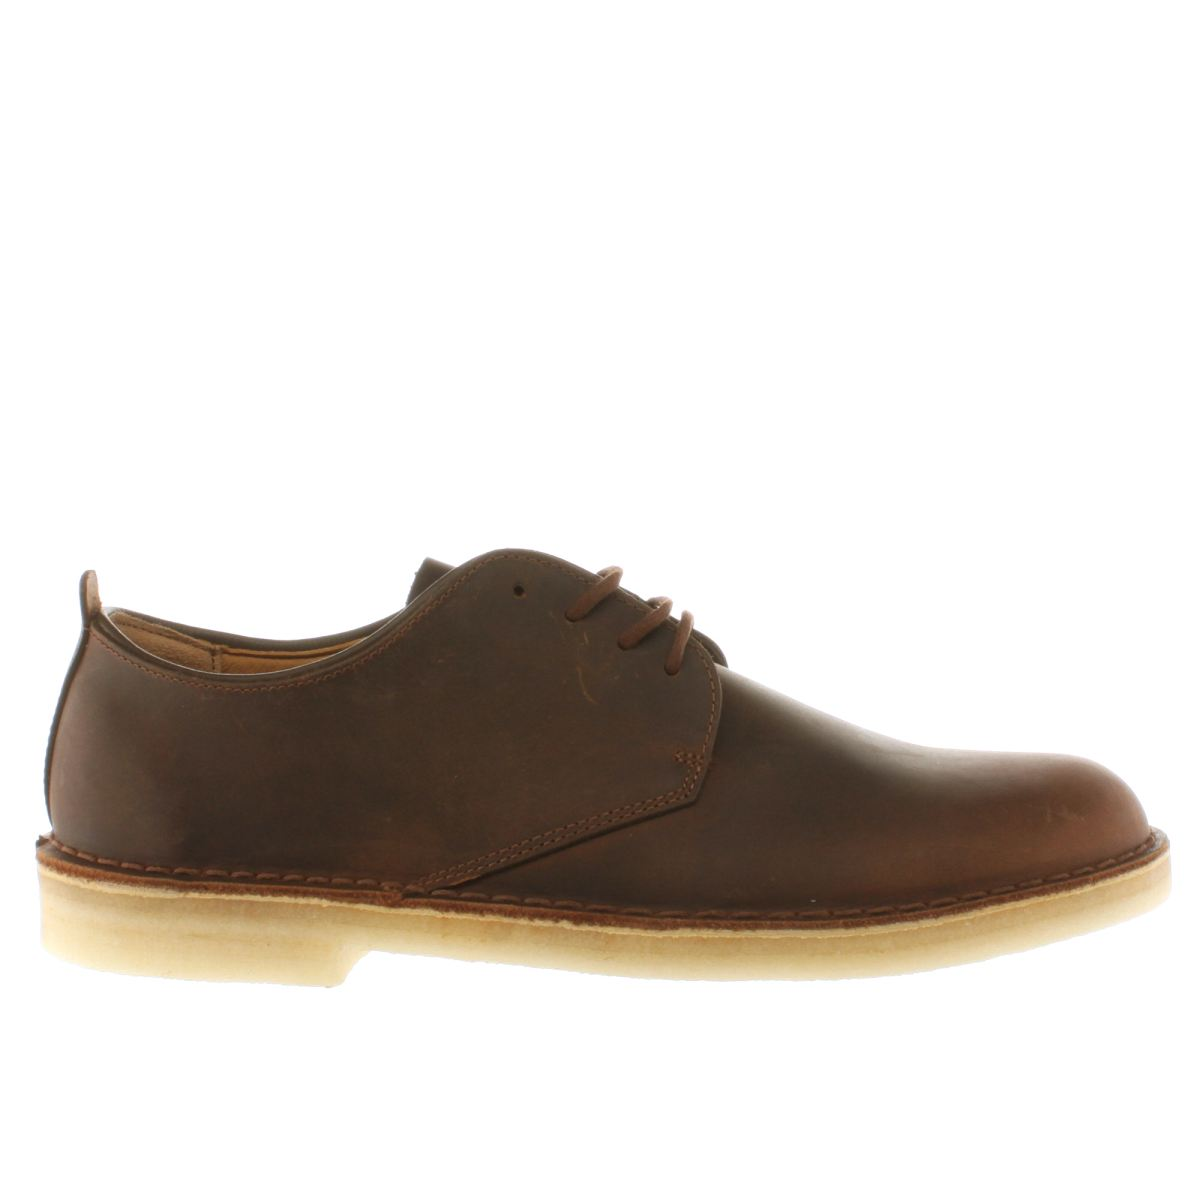 clarks originals brown desert london shoes